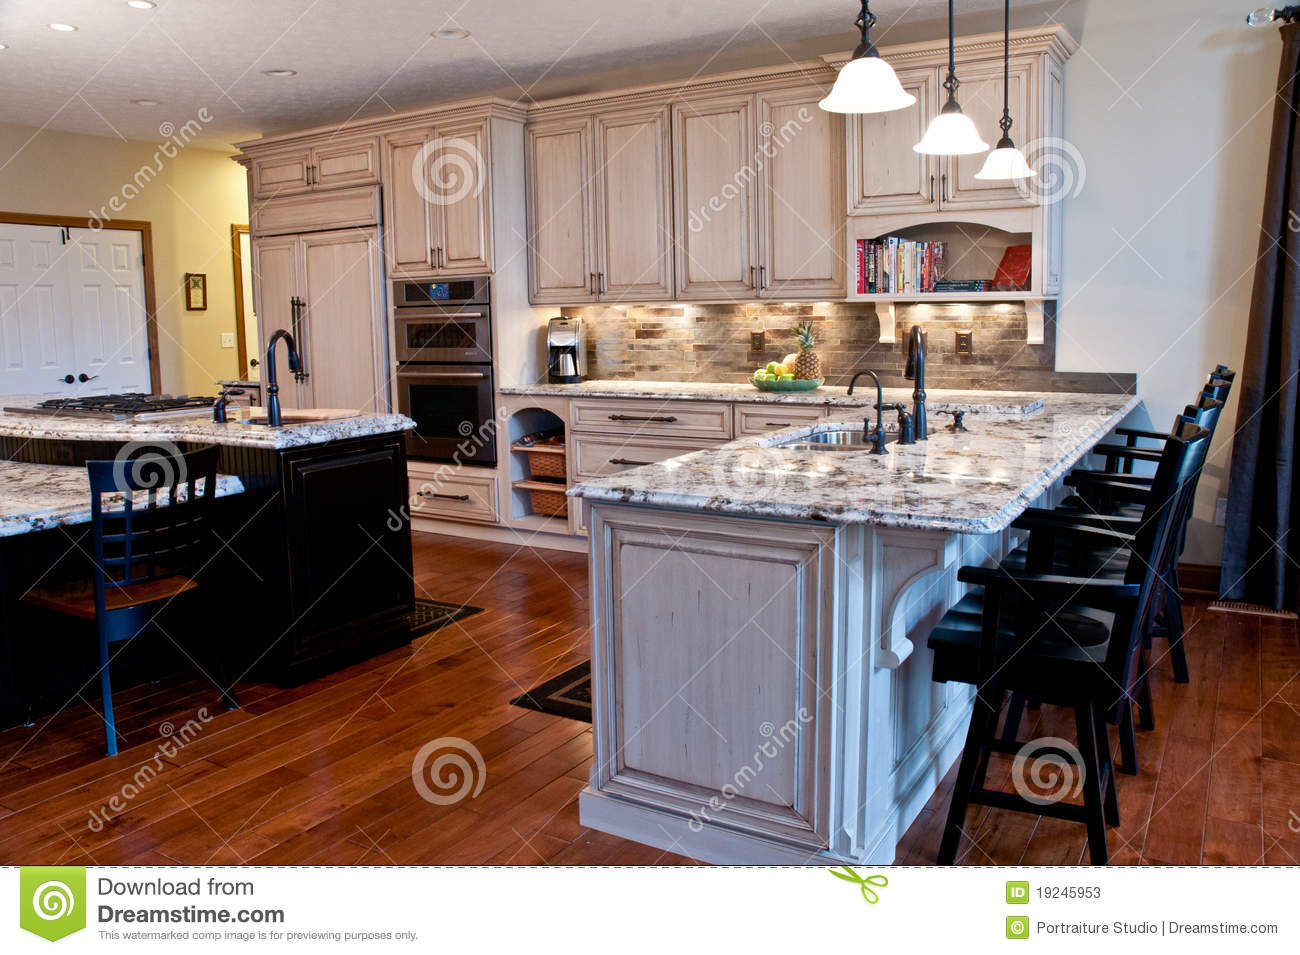 Designer Kitchen Stock Image Image Of Cabinetry Contemporary 19245953